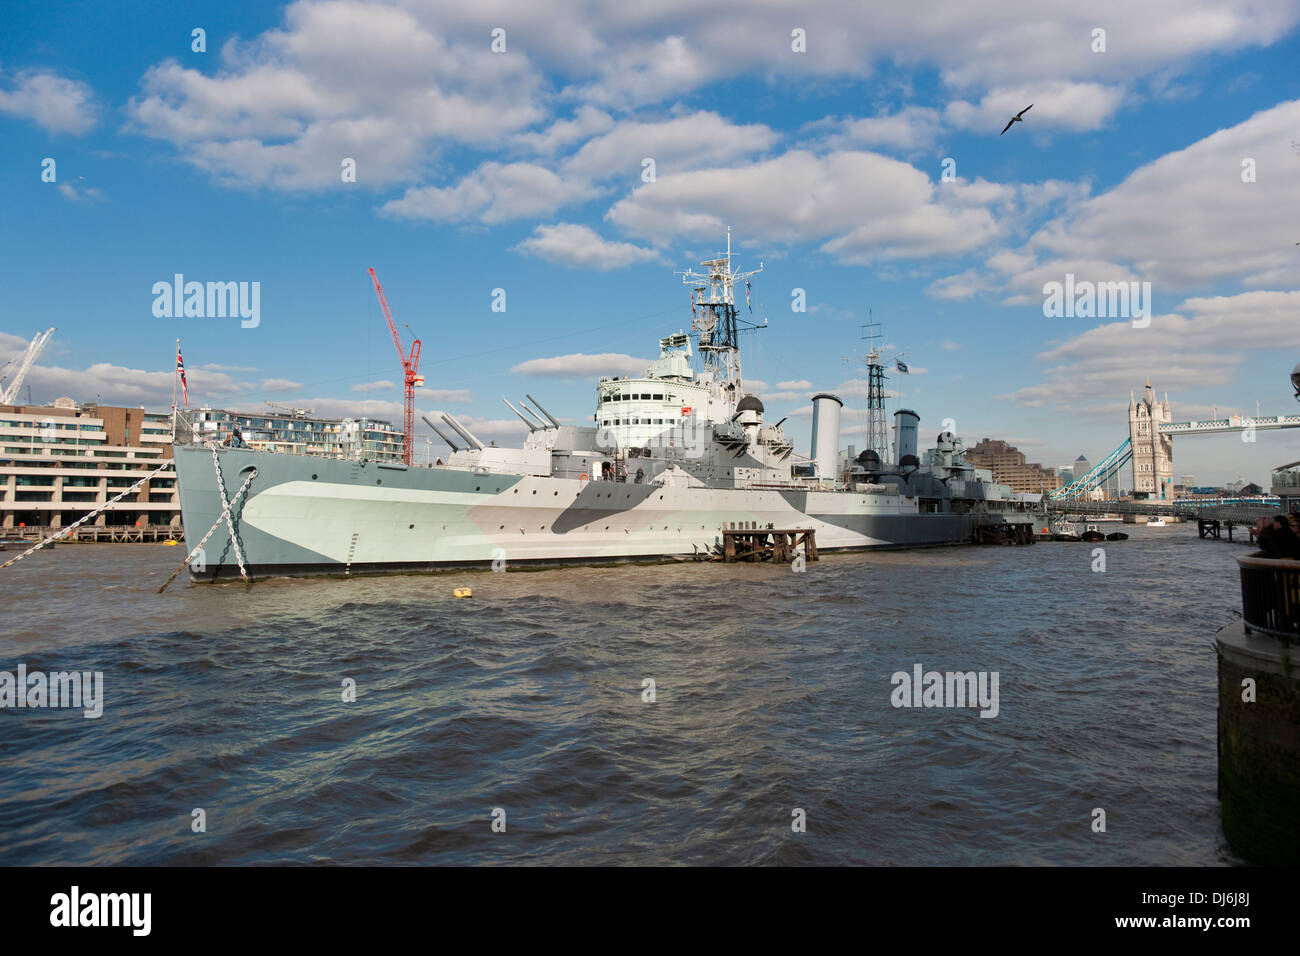 HMS Belfast moored on the River Thames, London, Imperial War Museum - Stock Image